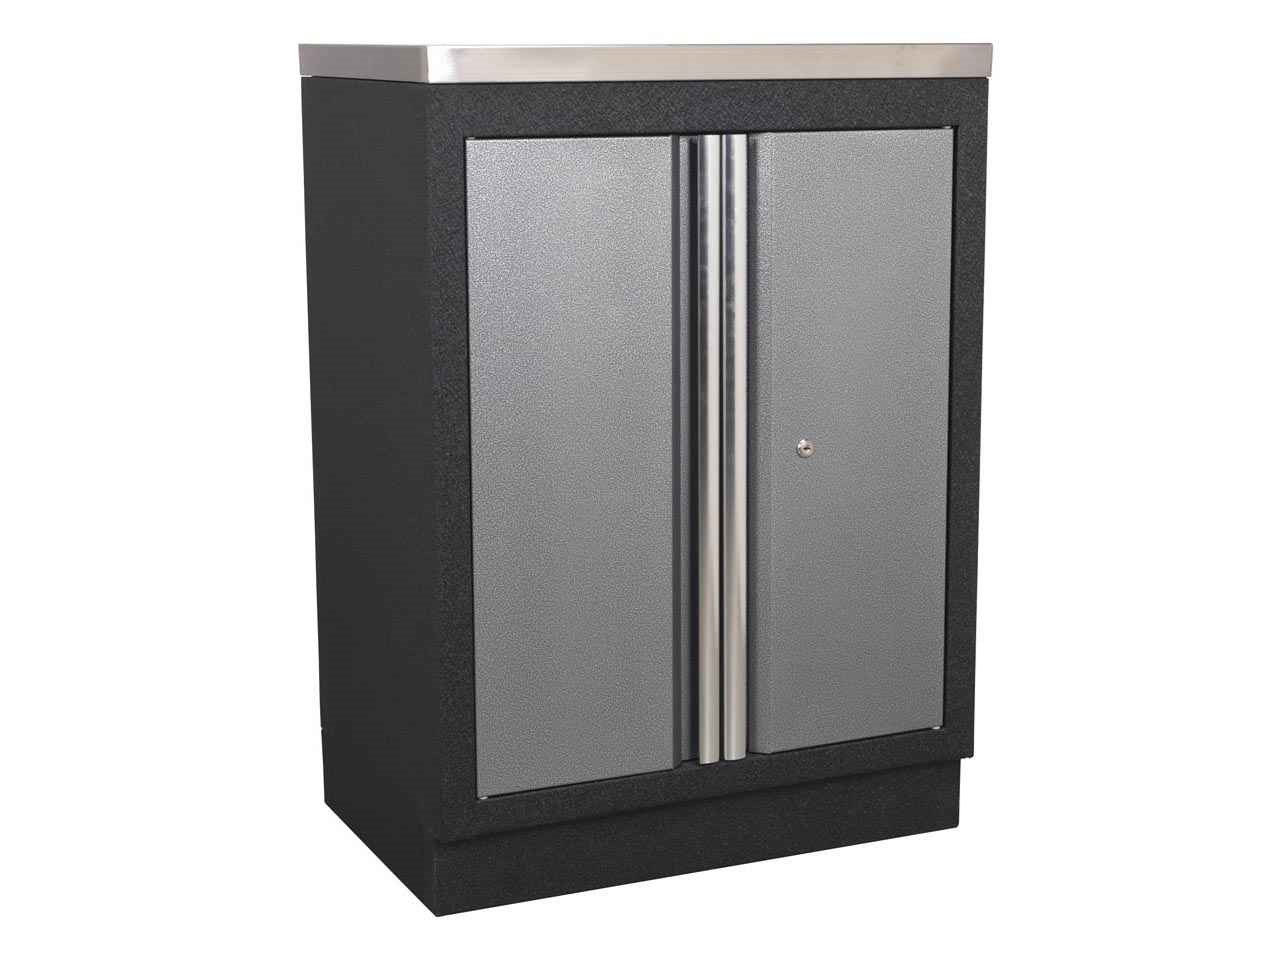 Awe Inspiring Sealey Apms52 Modular 2 Door Floor Cabinet 680Mm Interior Design Ideas Gentotryabchikinfo